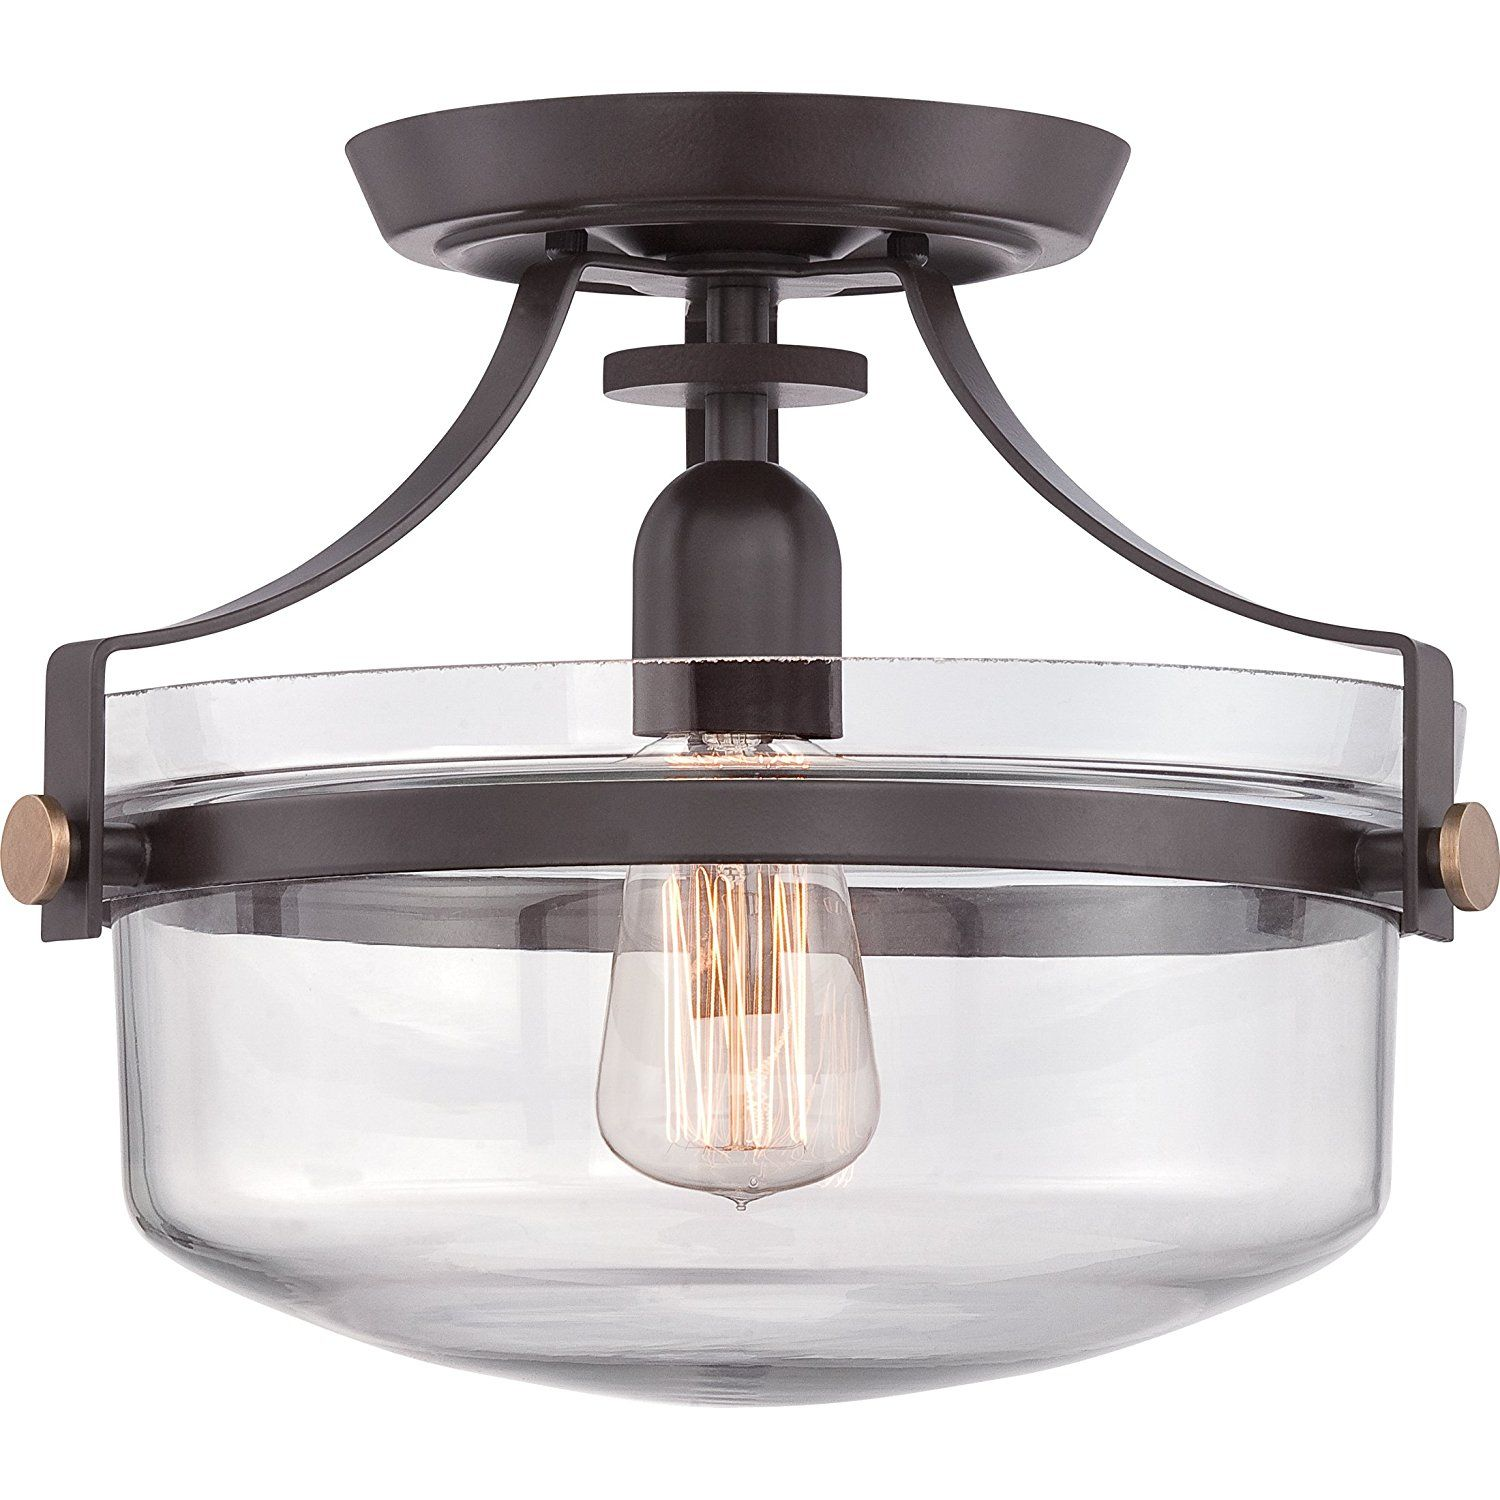 Quoizel UPPSWT One Light SemiFlush Mount Amazoncom - Western kitchen light fixtures